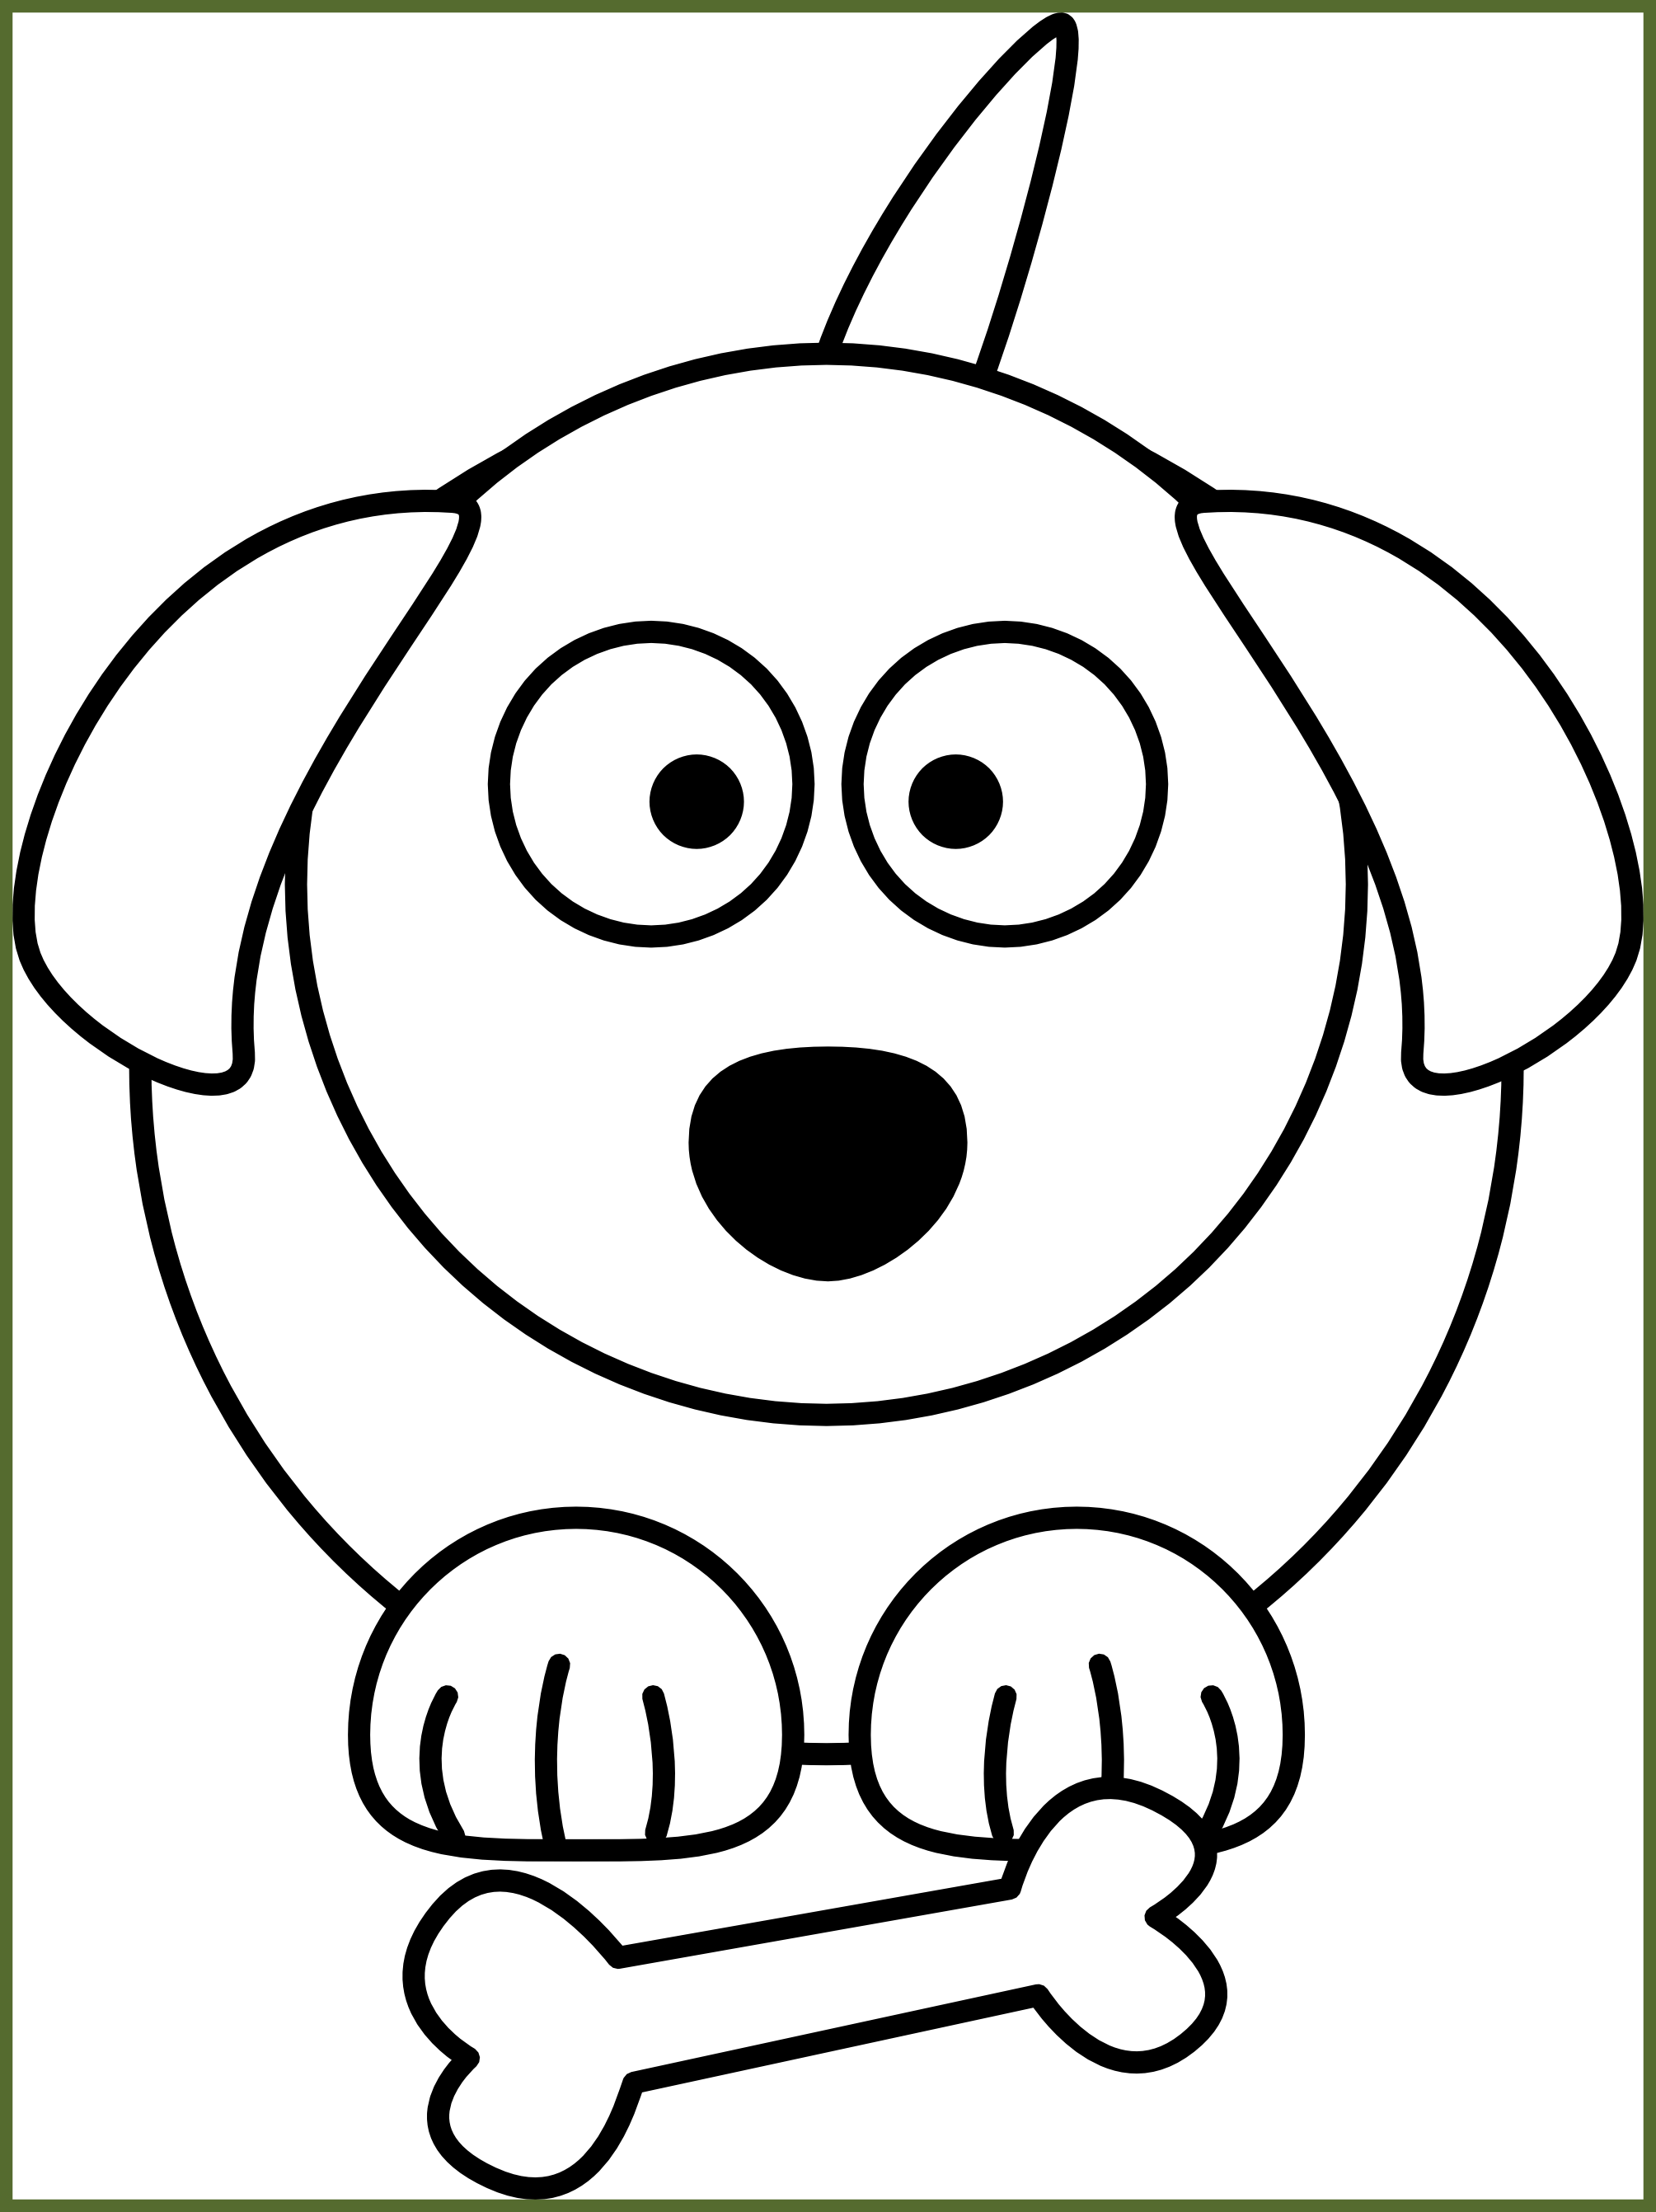 Puppy dog black and. Husky clipart puppie